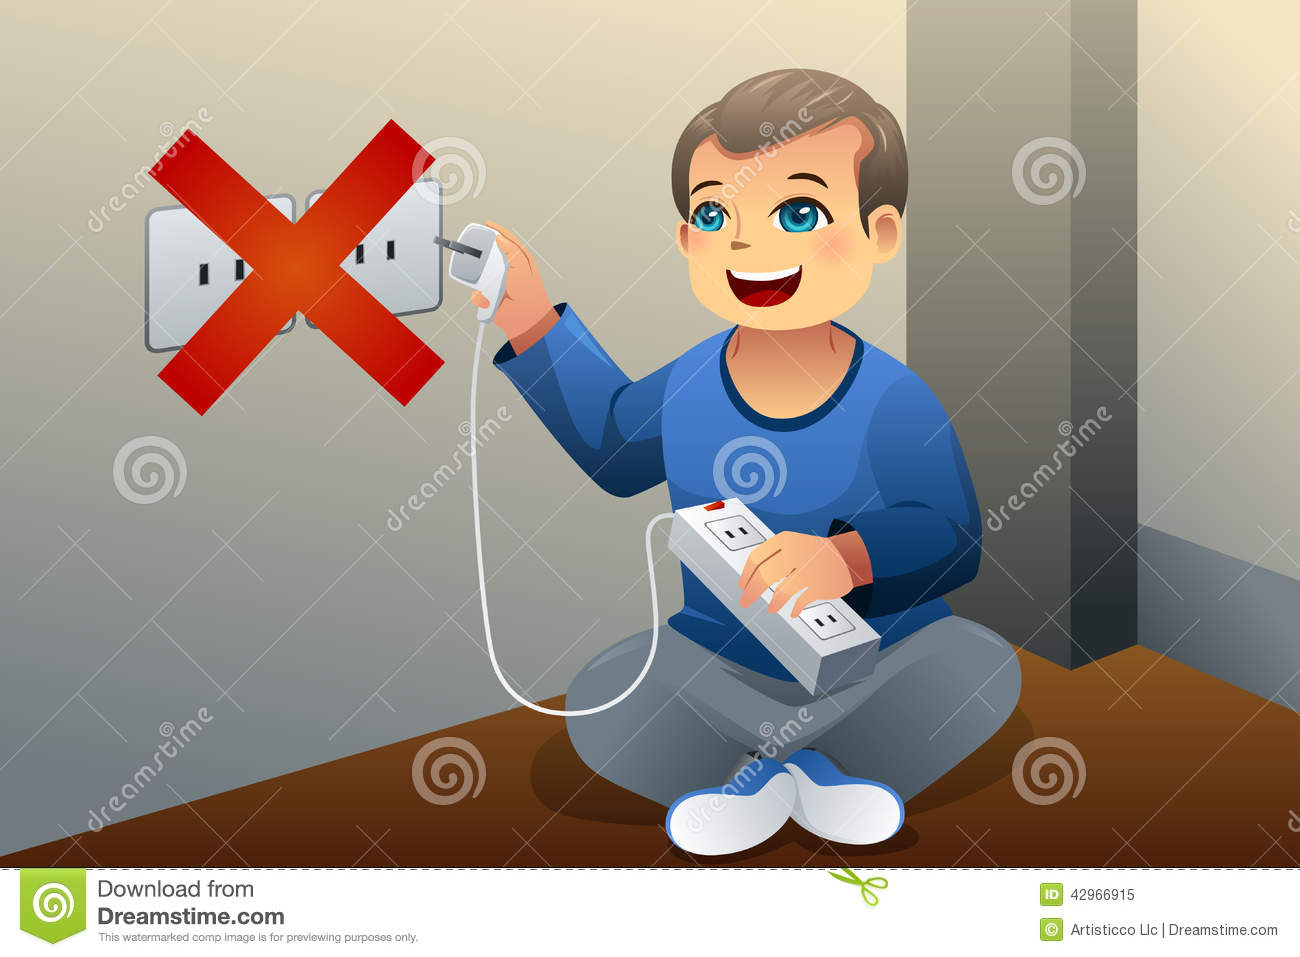 Danger Of Playing With An Electrical Outlet Stock Vector - Image ...